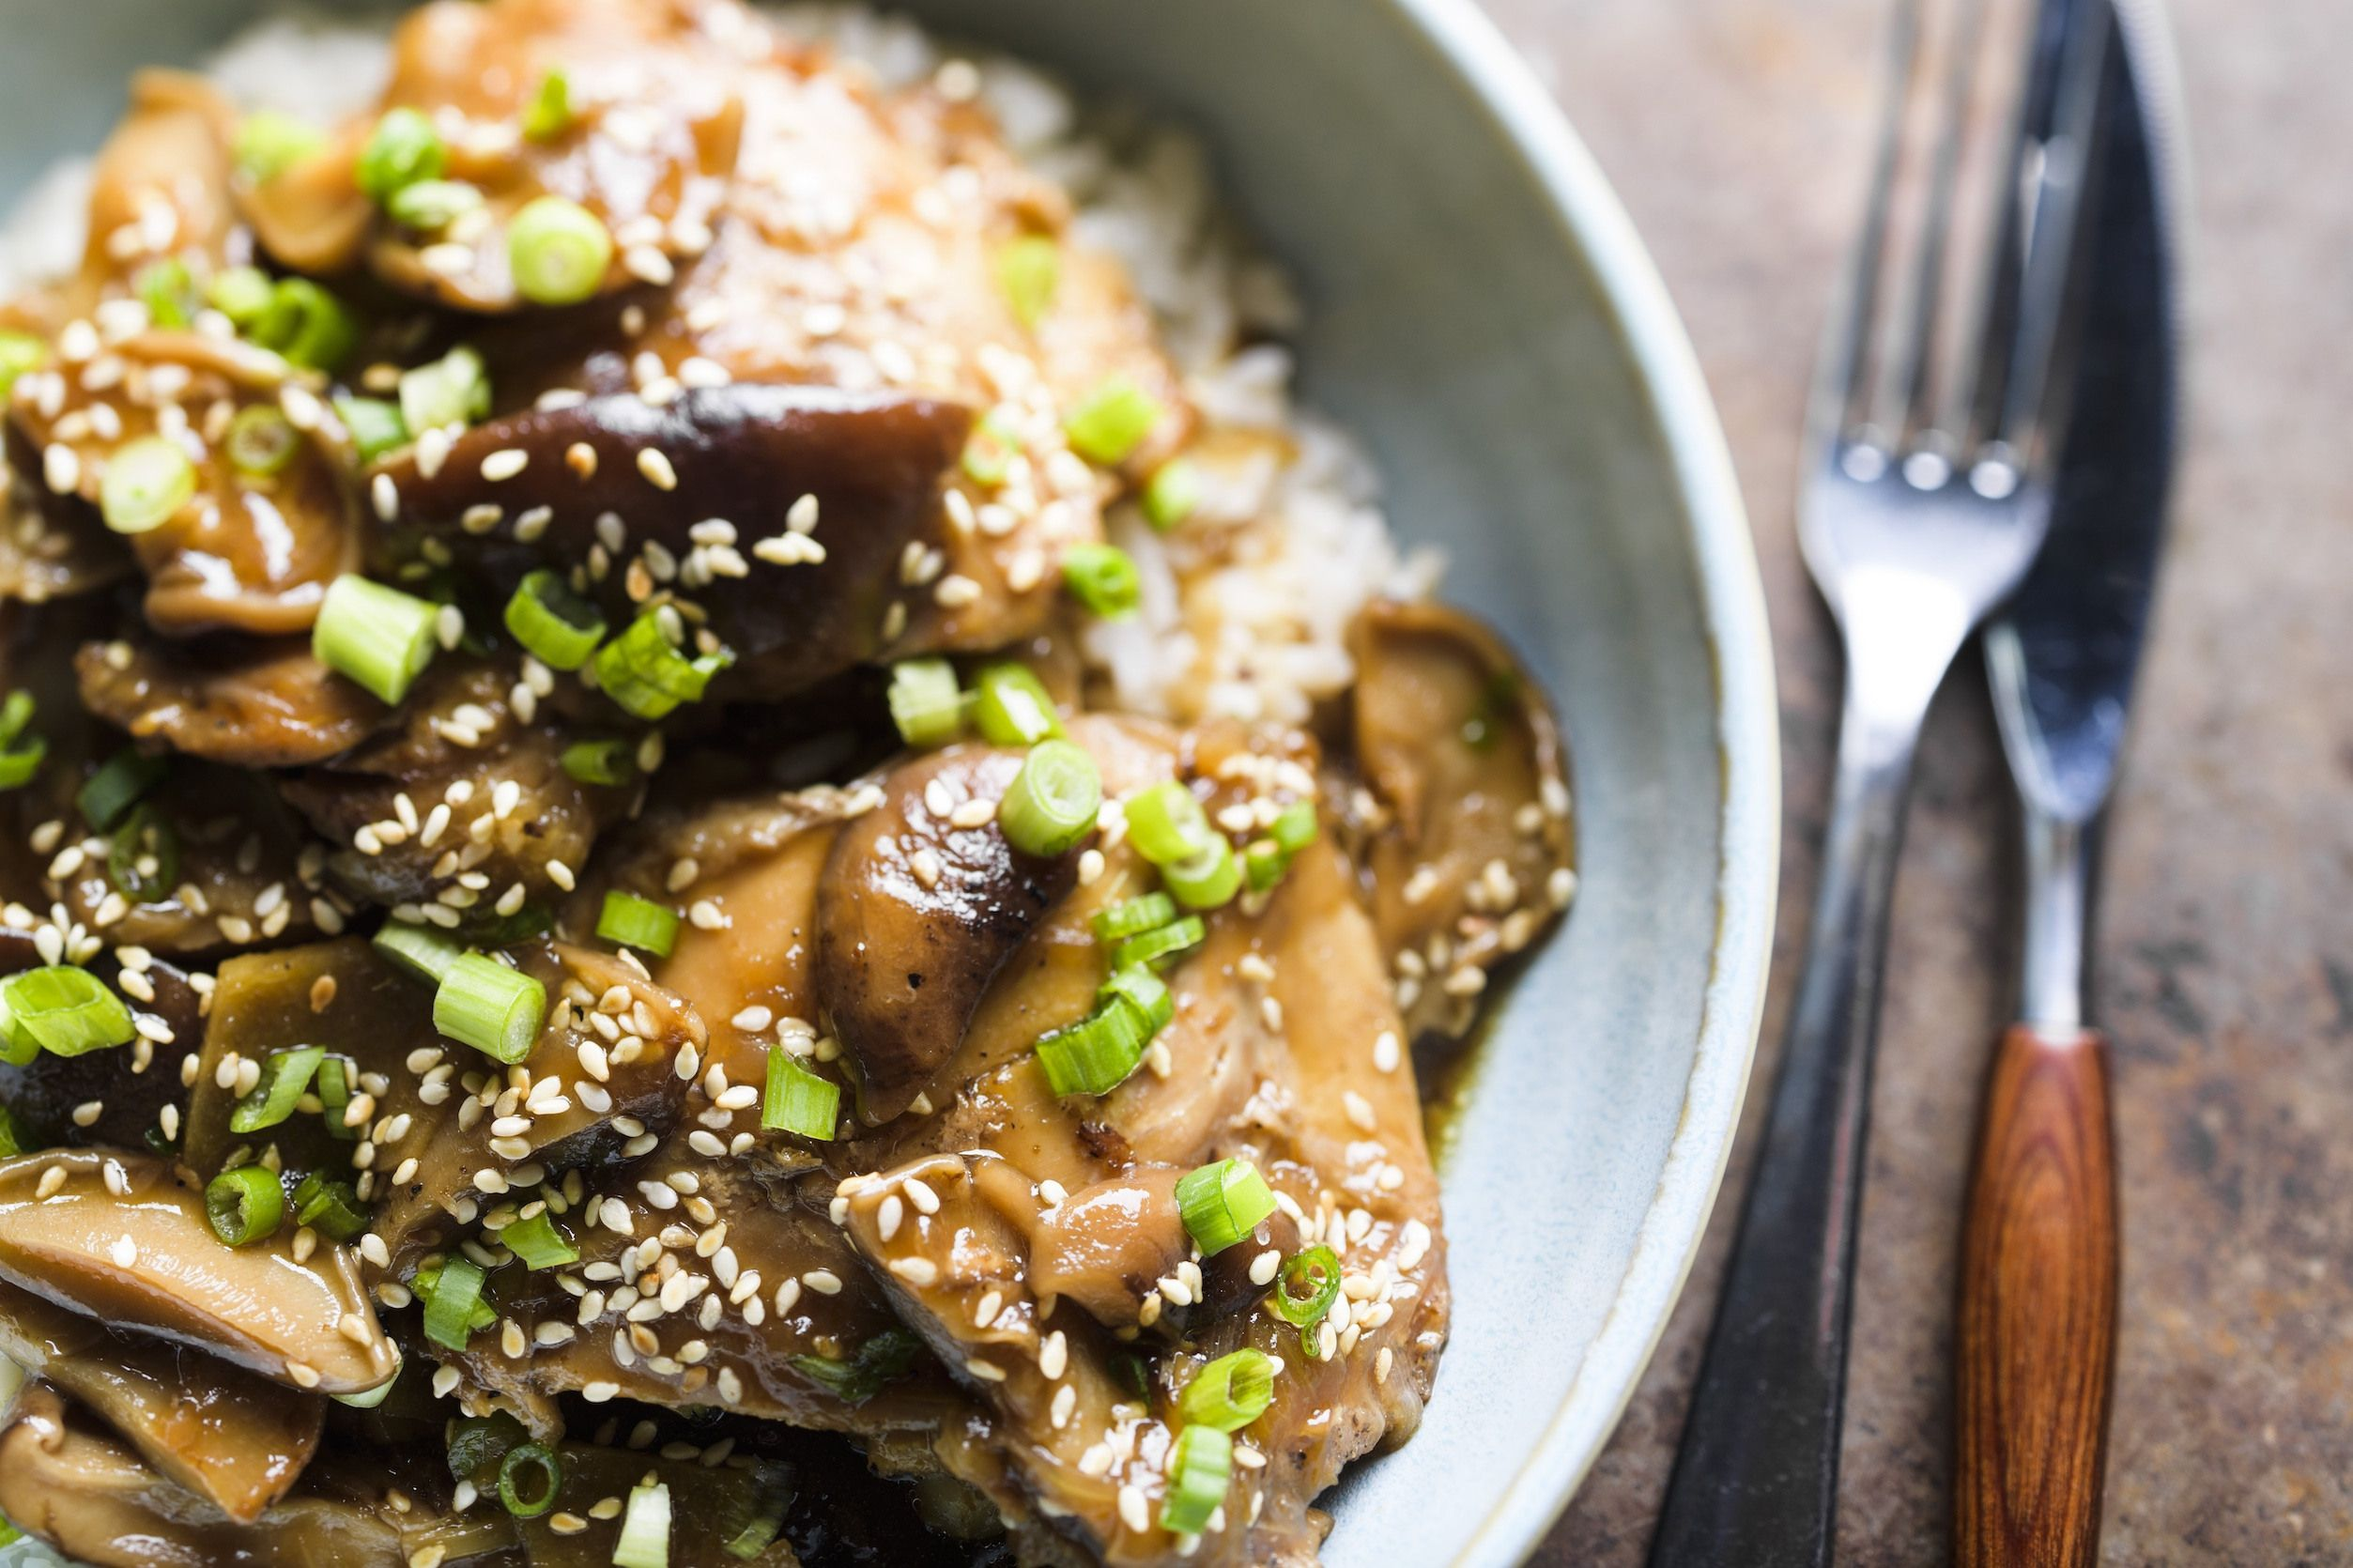 Braised Chicken with Shiitake Mushrooms and Ginger